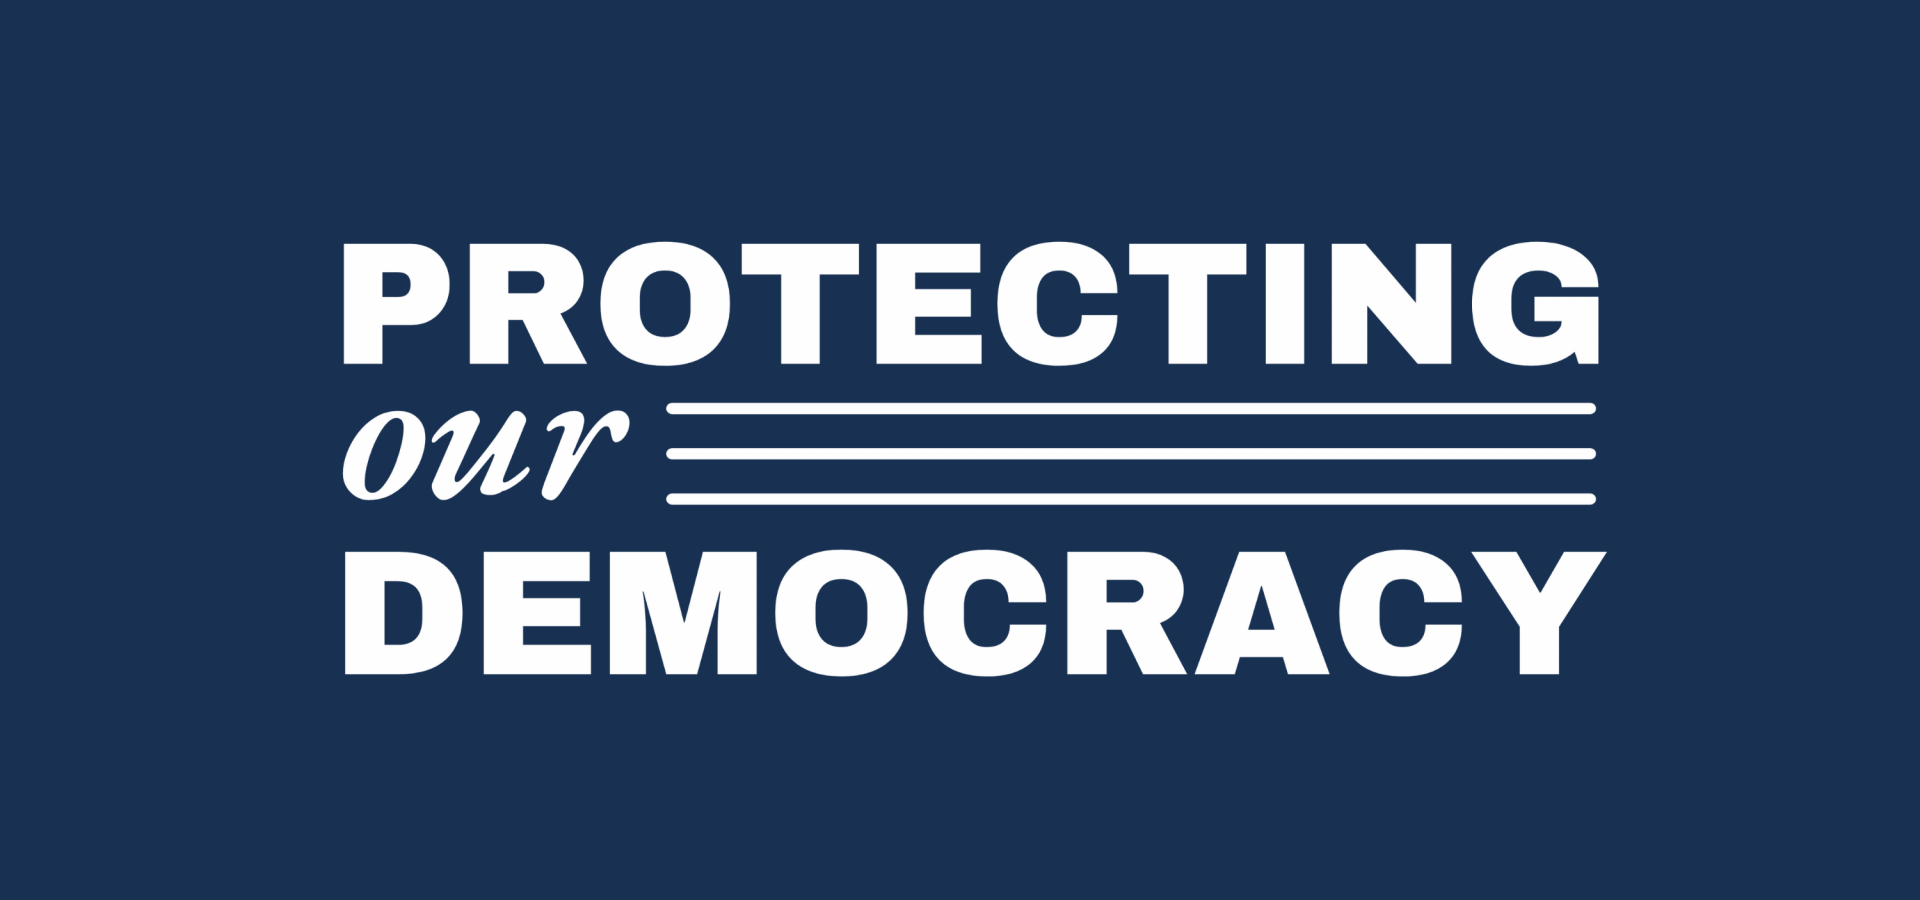 A website banner with a navy blue background and white text that says Protecting Our Democracy.